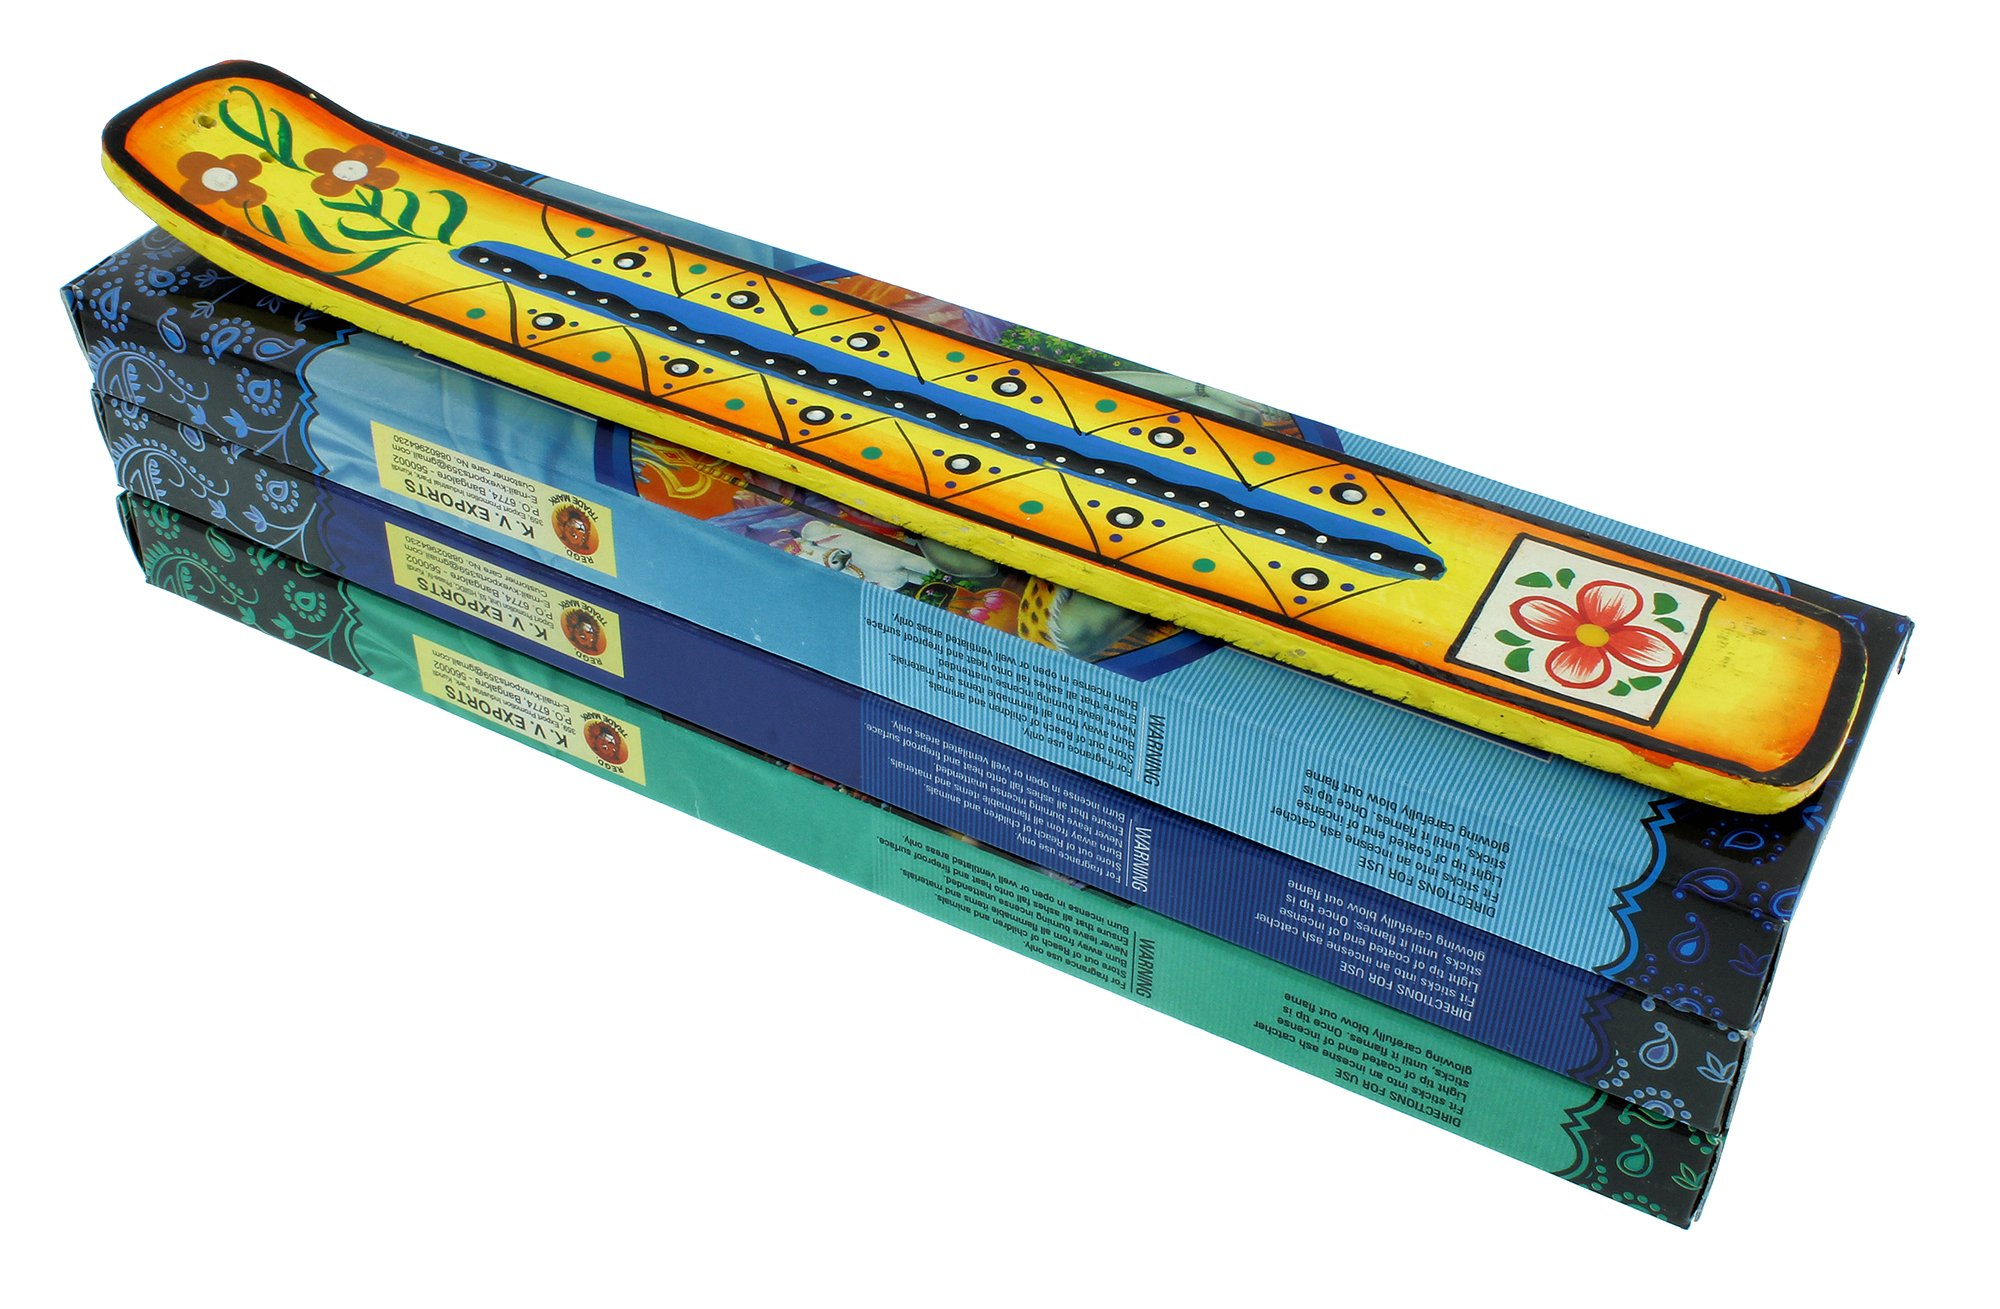 Zen Mood Incense Gift Pack - 3 Boxes of Assorted Indian God Incense and 1 Hand Painted Incense Holder with Flower Design - Yellow